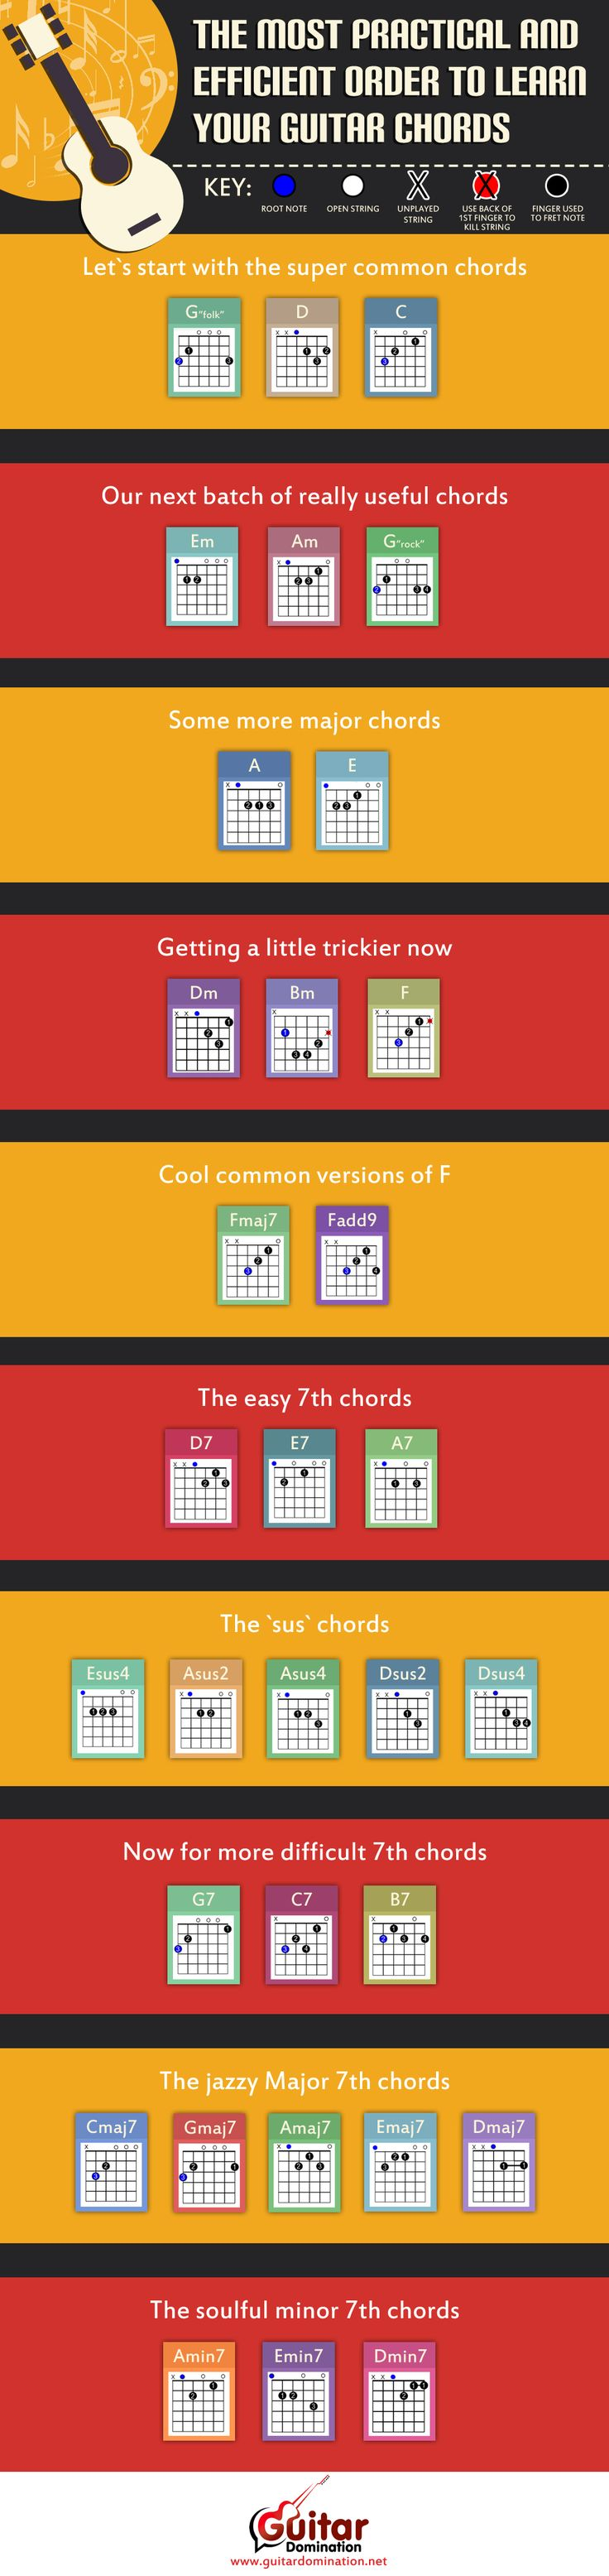 The first thing I ever favorited: The Chords Every Guitarist Should Know - Imgur